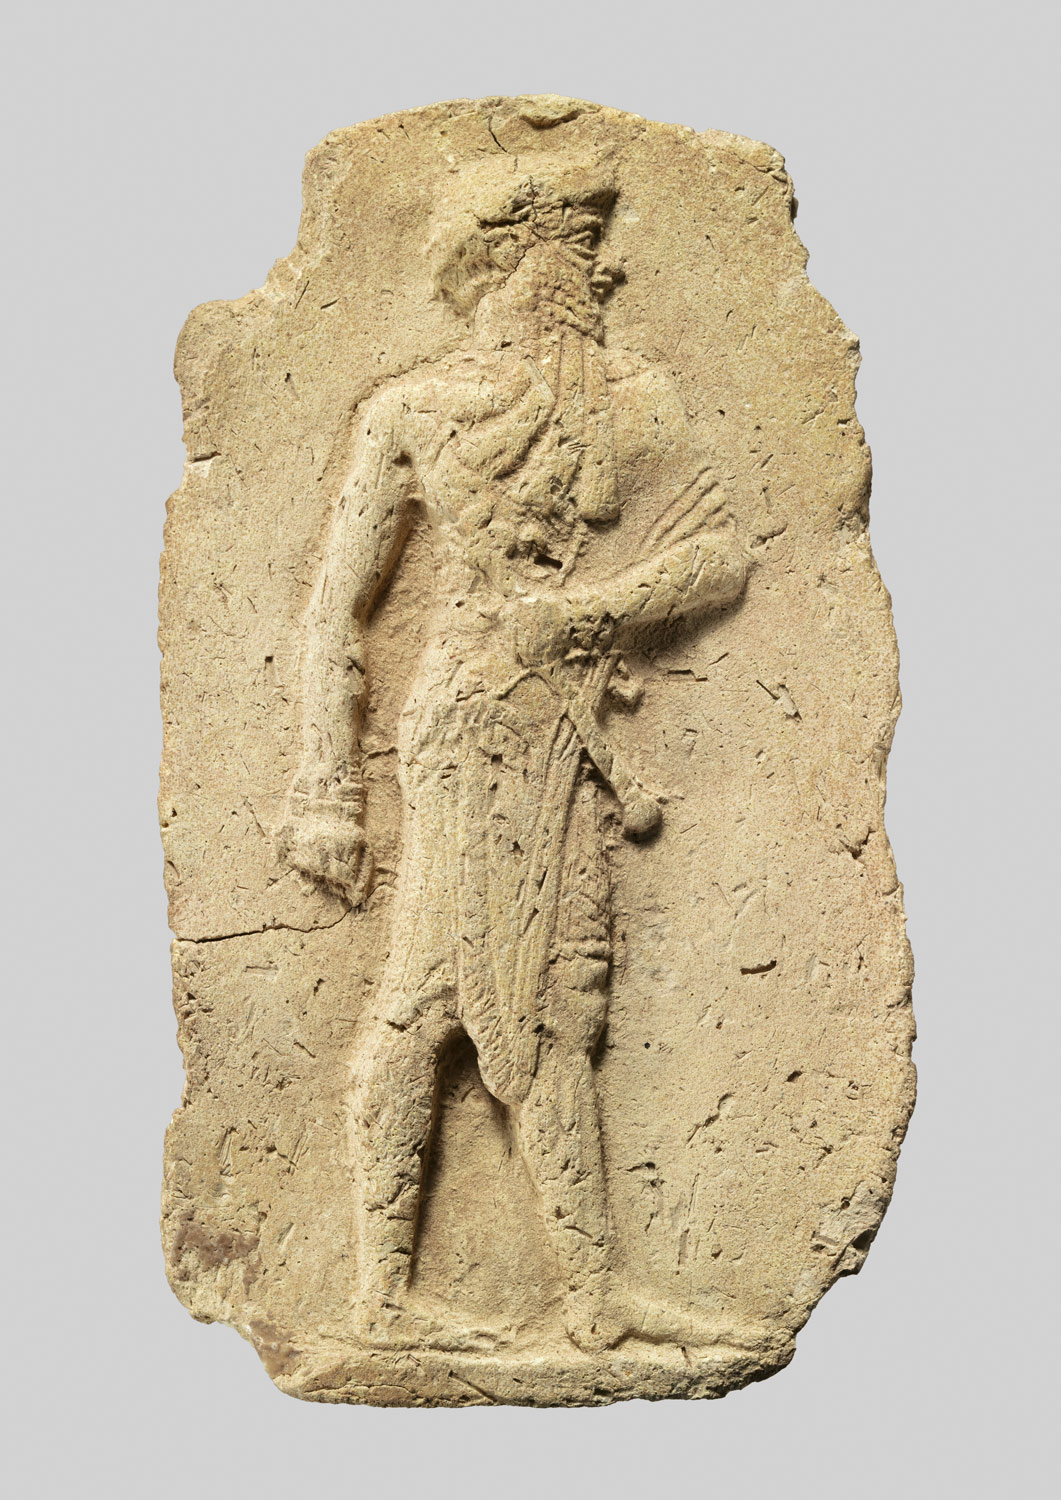 Molded plaque: king or a god carrying a mace